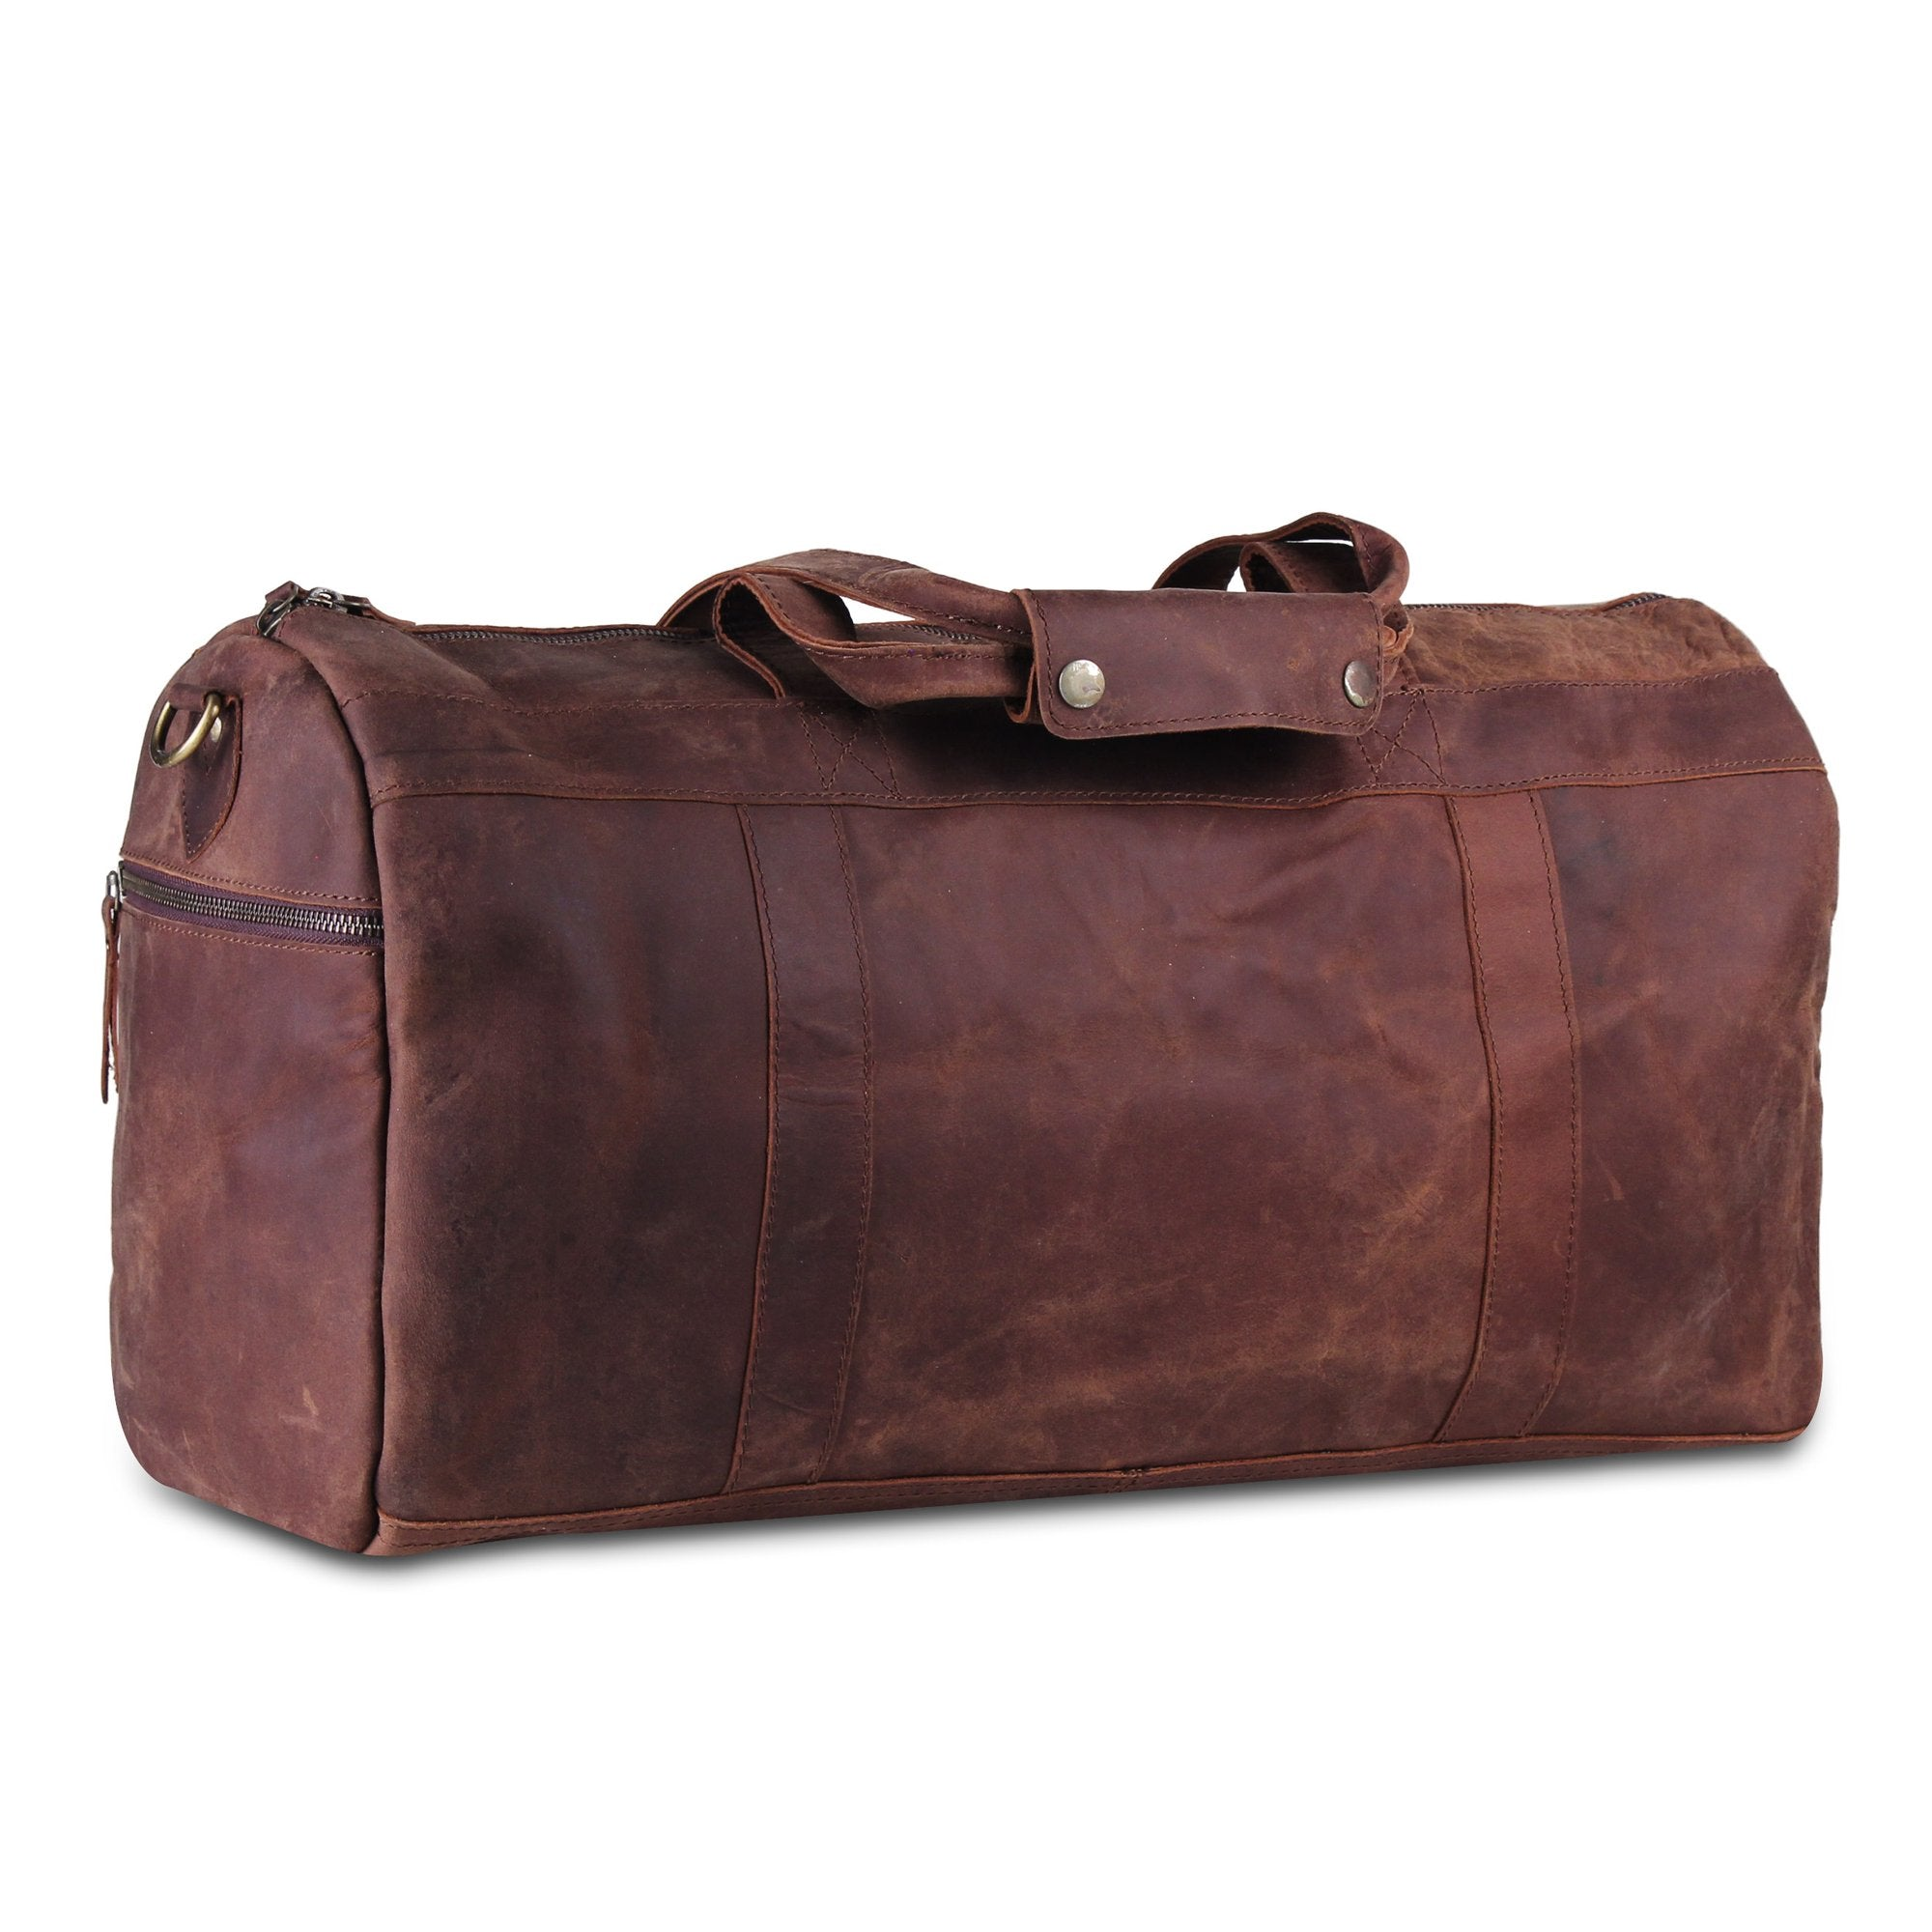 Good Quality Leather Duffle Bag with Adjustable Strap